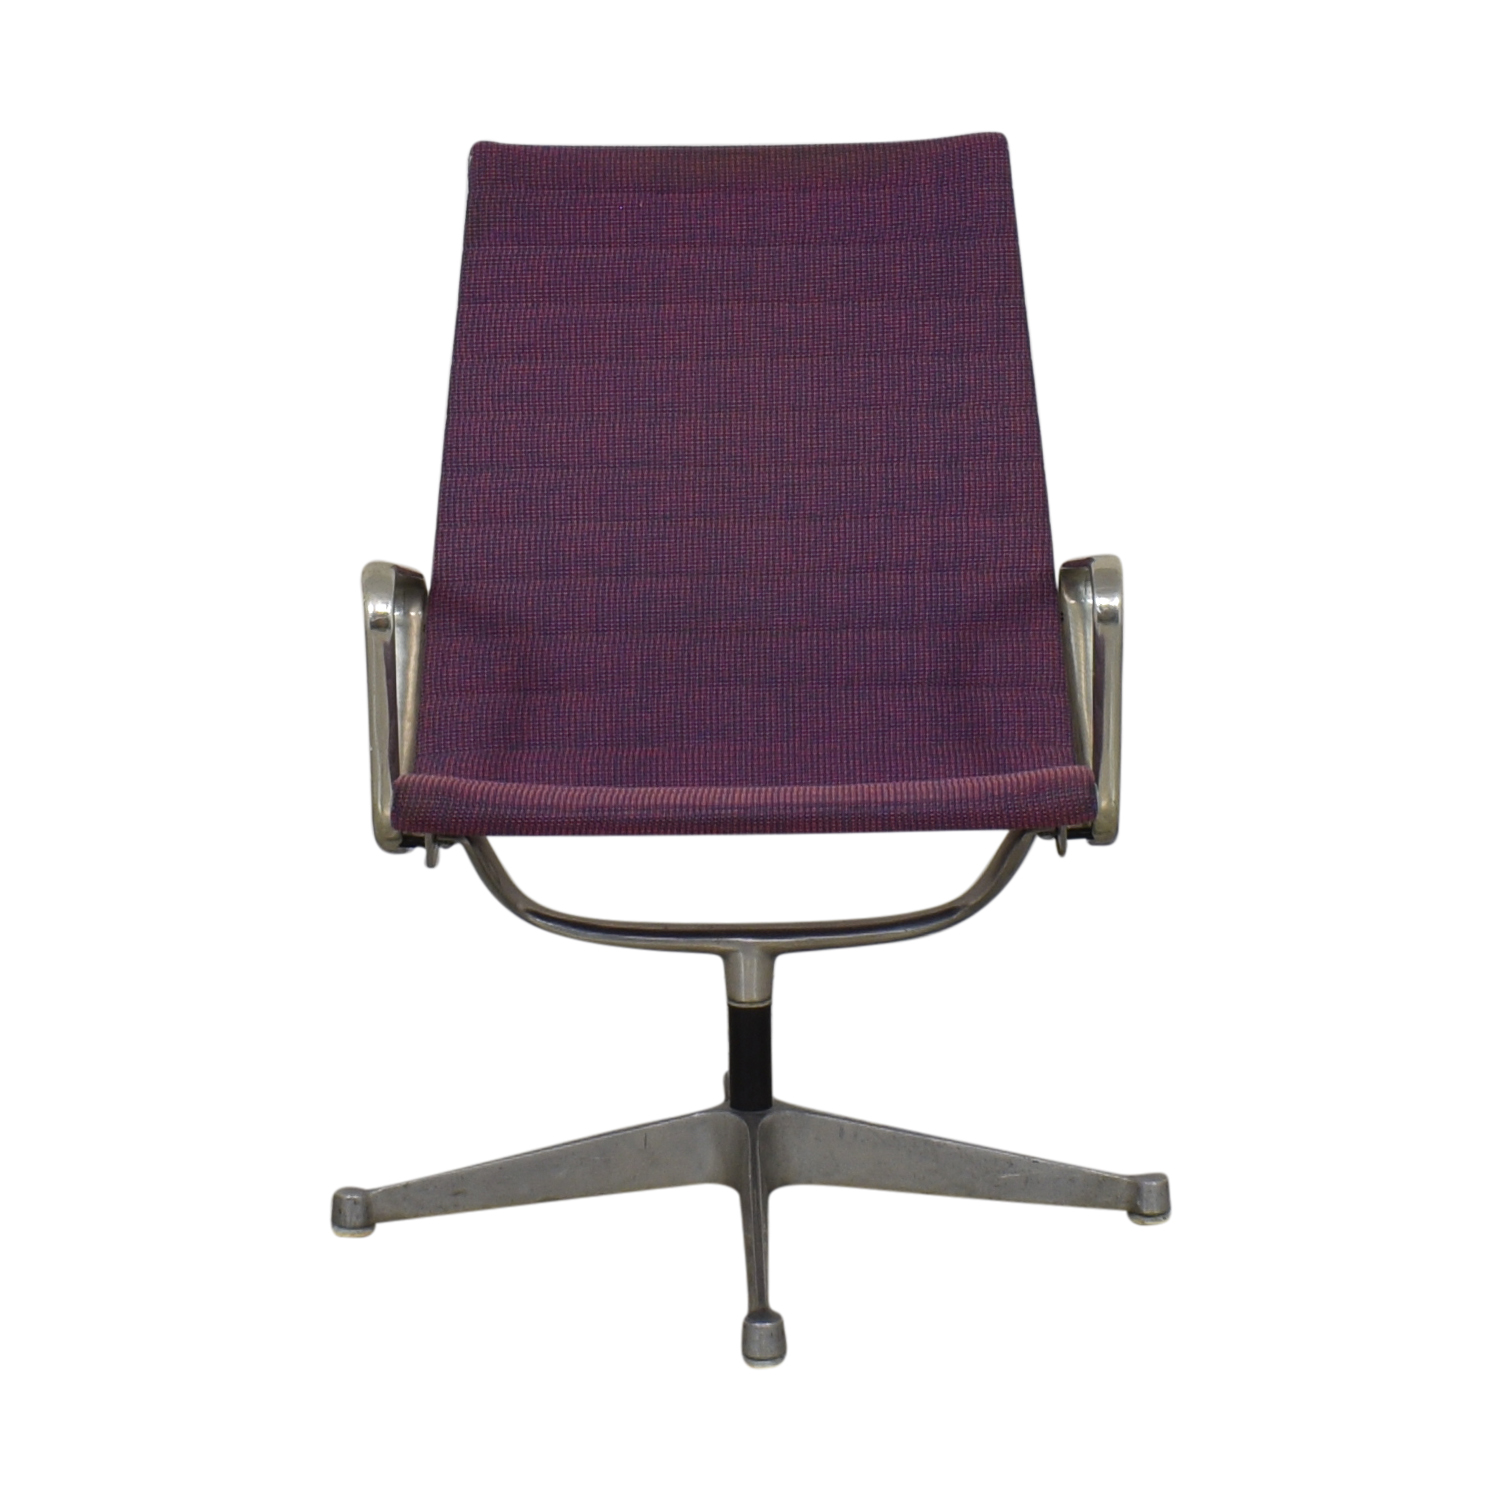 Herman Miller Herman Miller Eames Office Chair discount